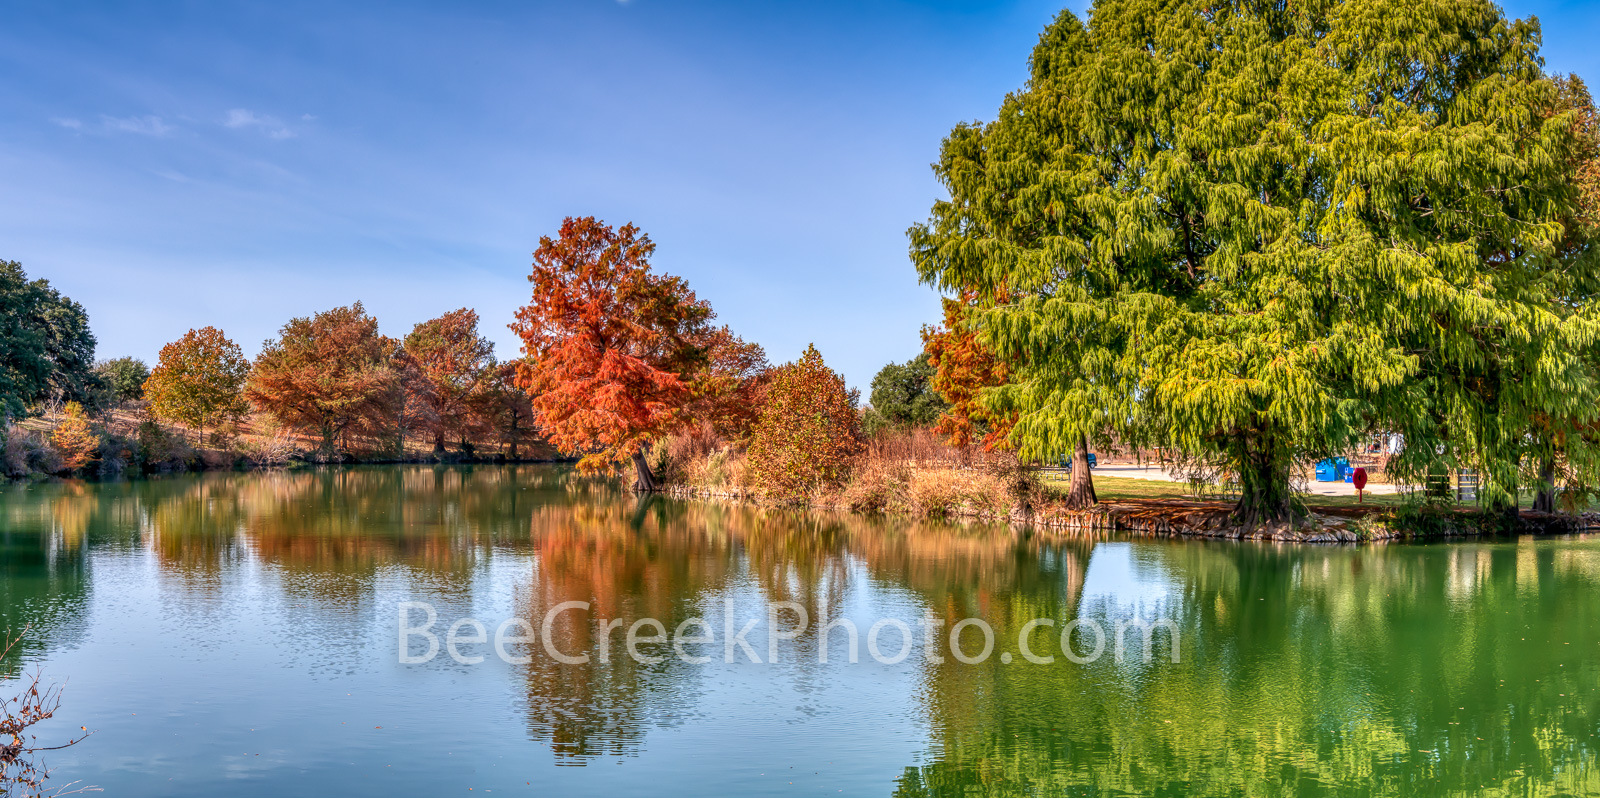 Autumn at the Blanco River - This was taken along the blanco river in Blanco State Park.  This spring fed river is just an hour...